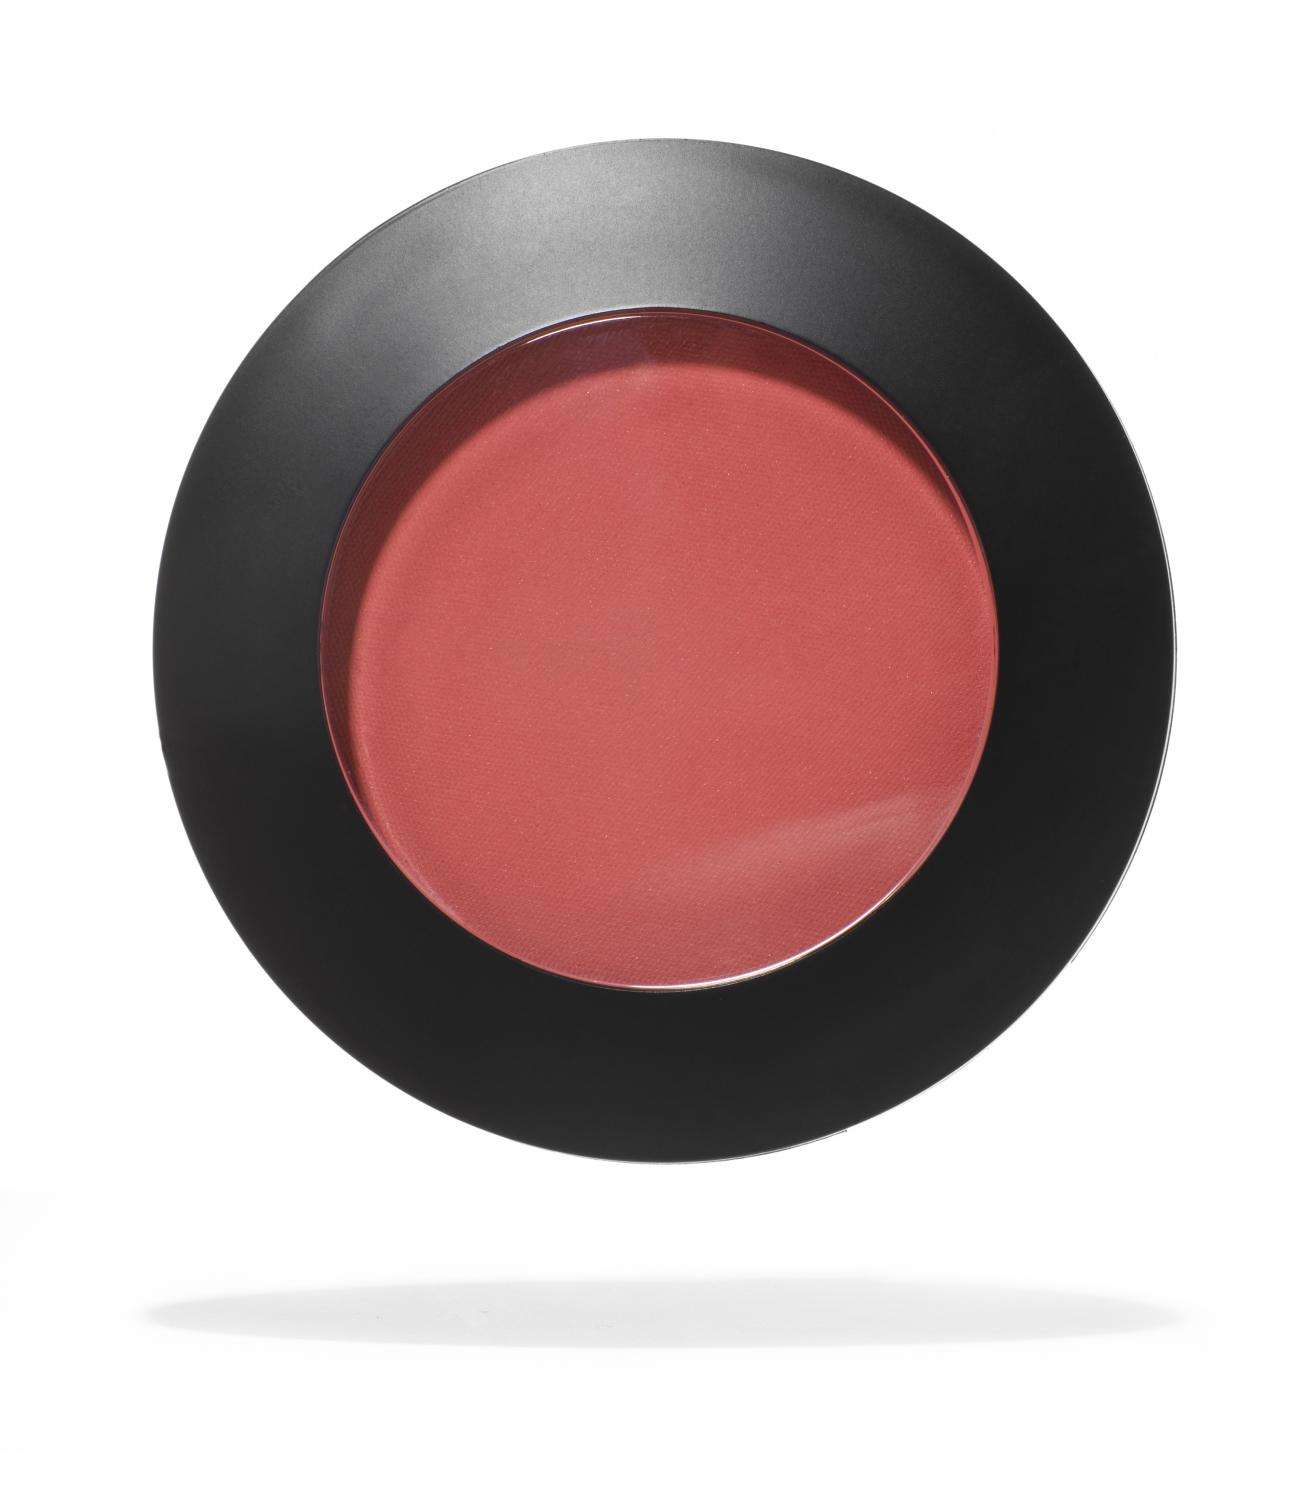 CHRY - MICRONIZED POWDER BLUSH